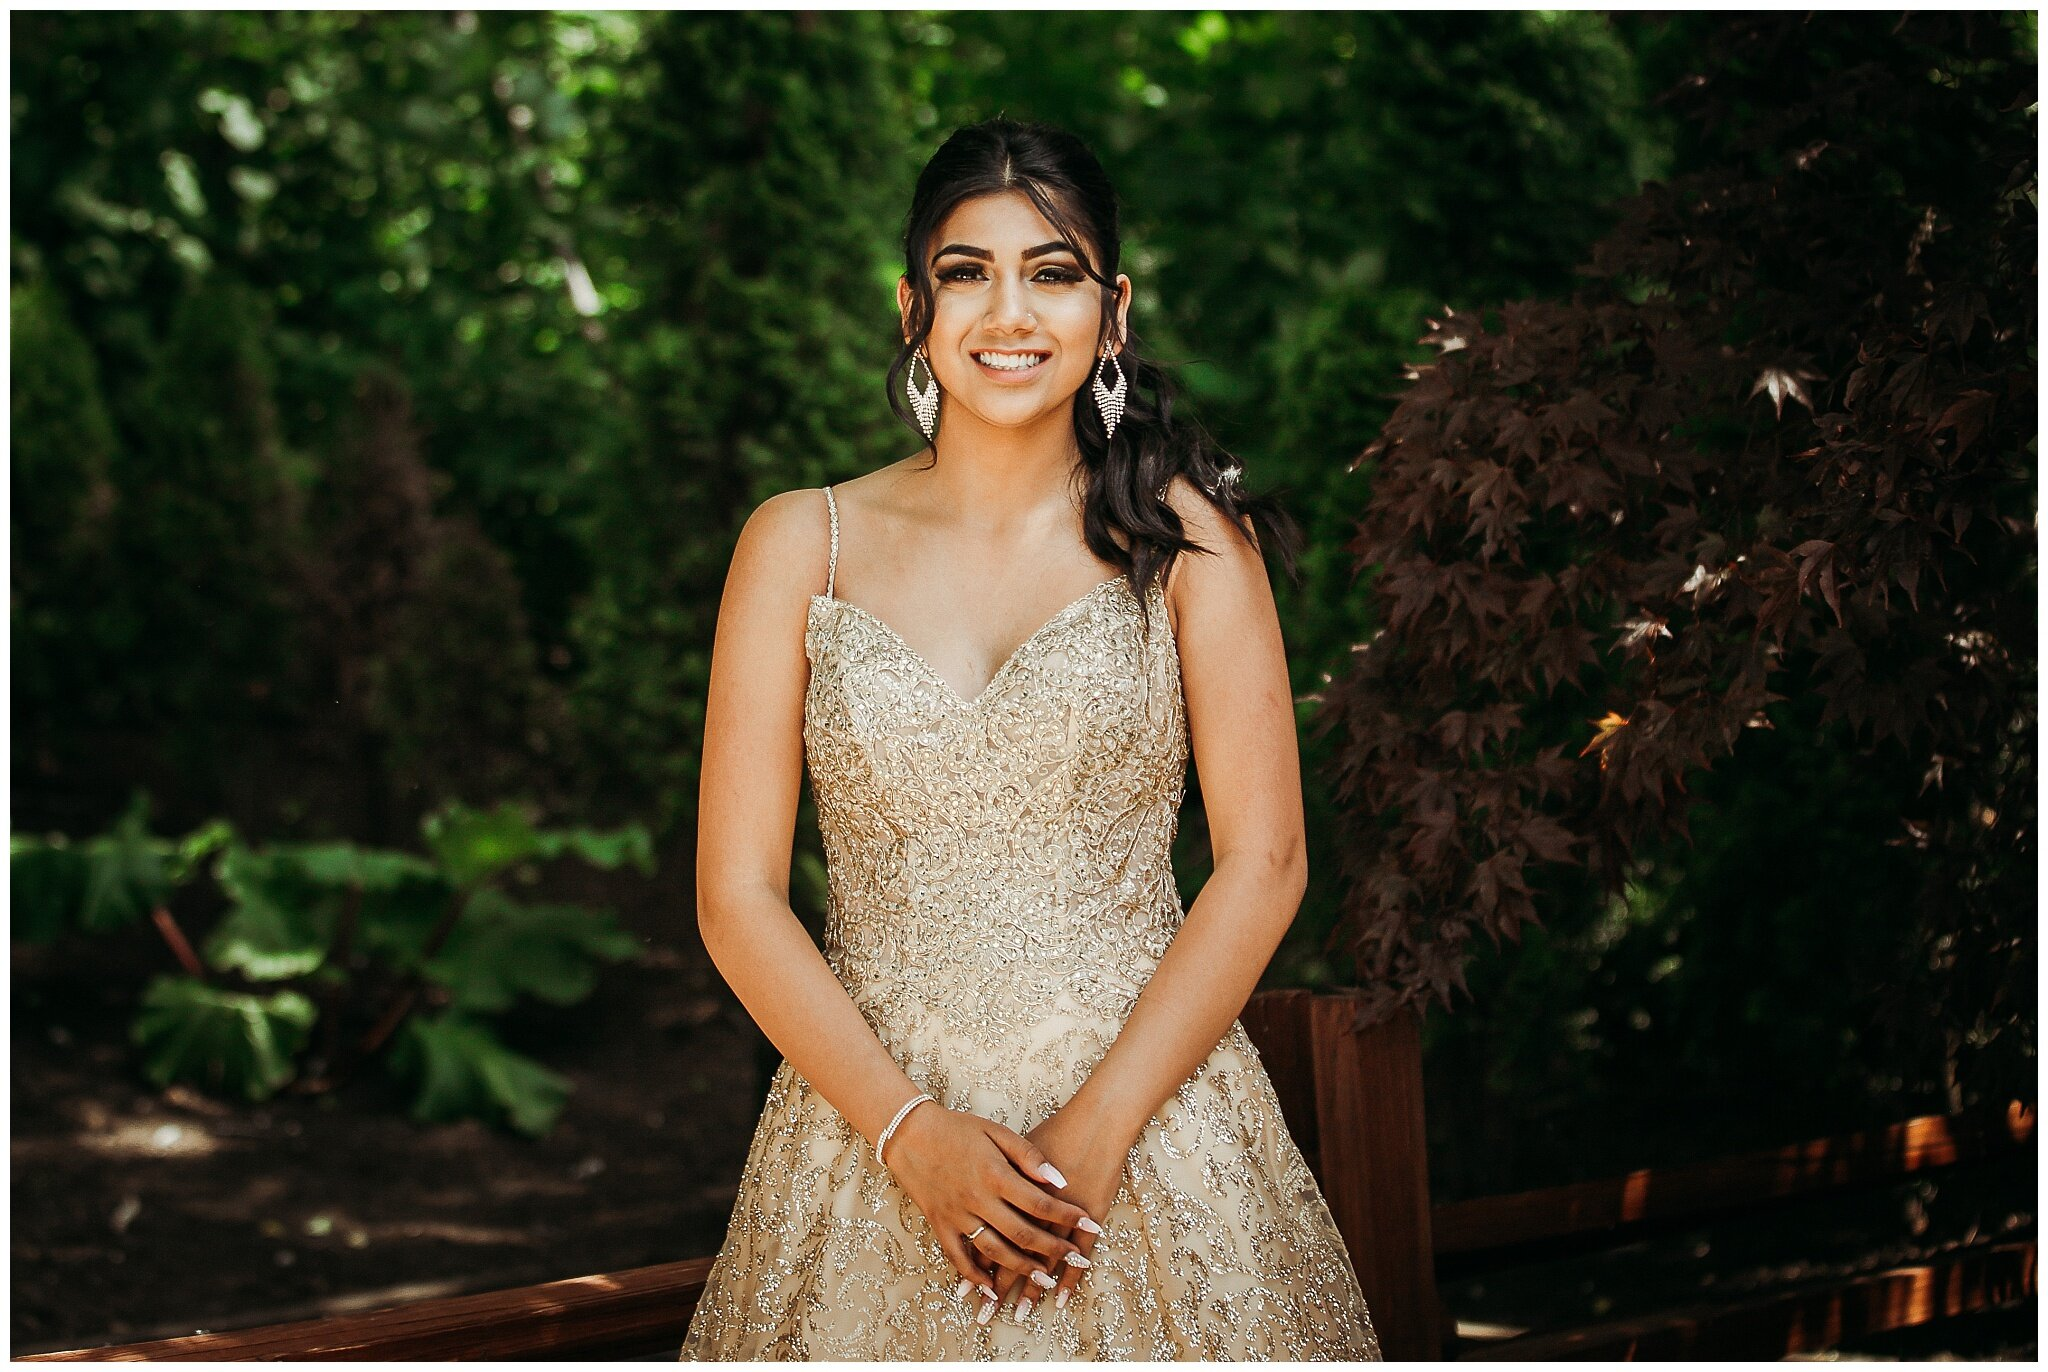 Abbotsford Highschool Prom Graduation Photographer 2019 Abbotsford fun bright_0004.jpg